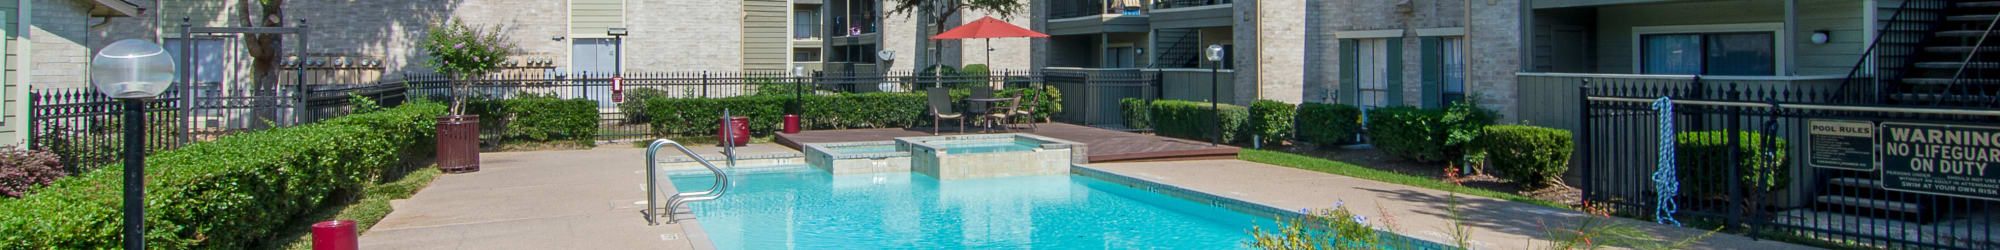 Reviews of Meadowbrook Apartments